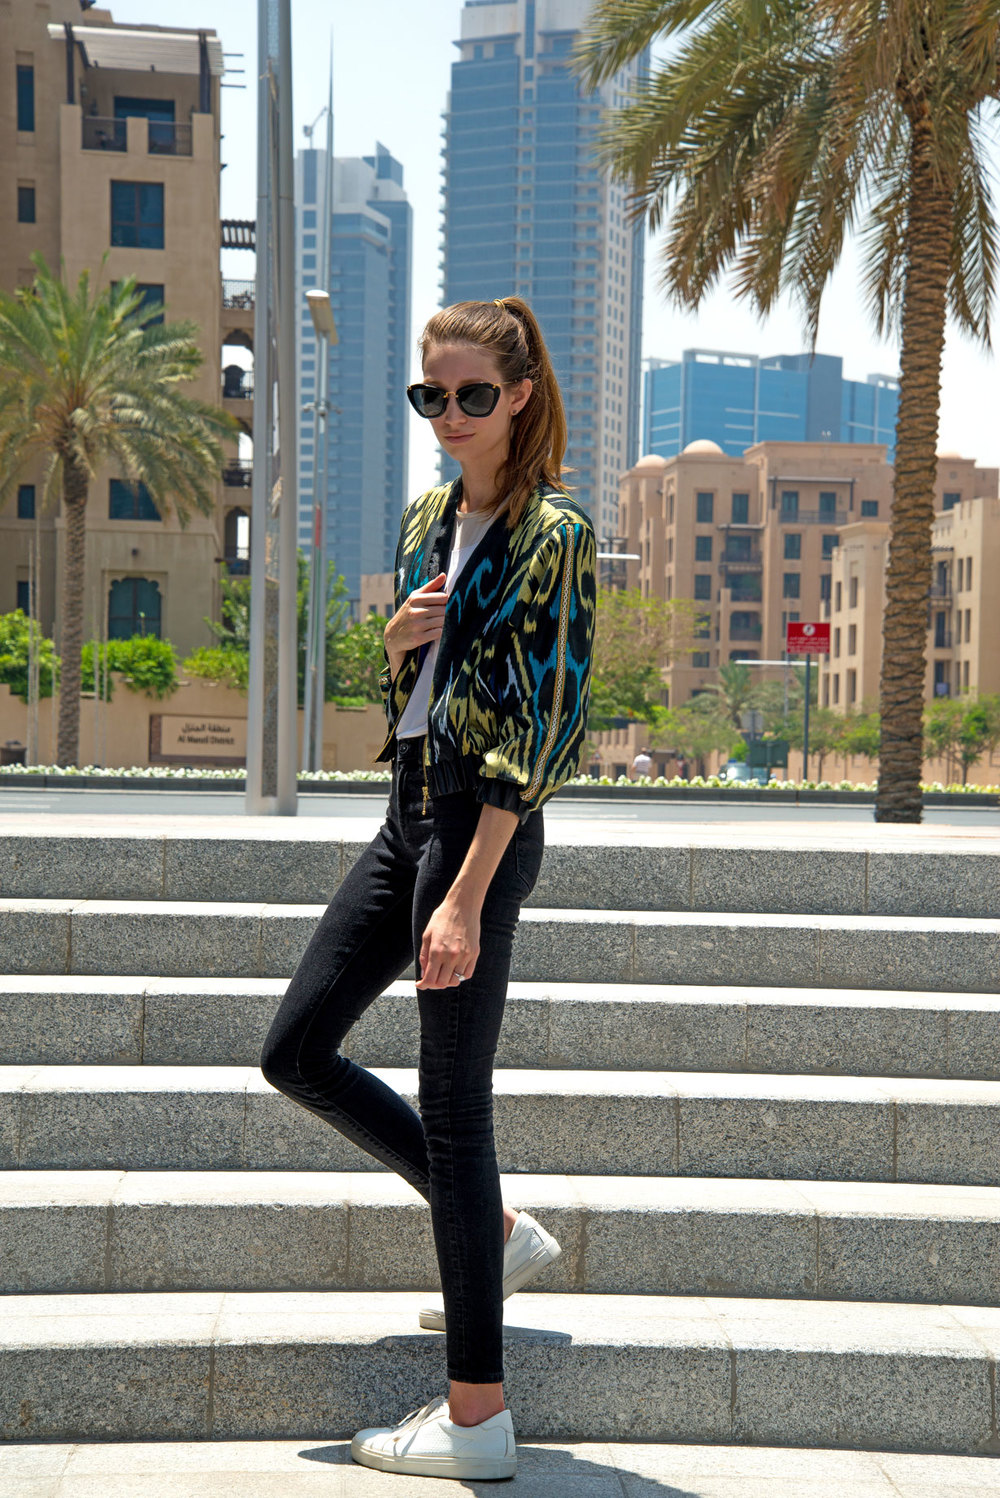 Bomber Jacket: SHADI by Dilbar & Sitora / Denim: Madewell / Sunglasses: Miu Miu / Photo by: Nathan Dunn